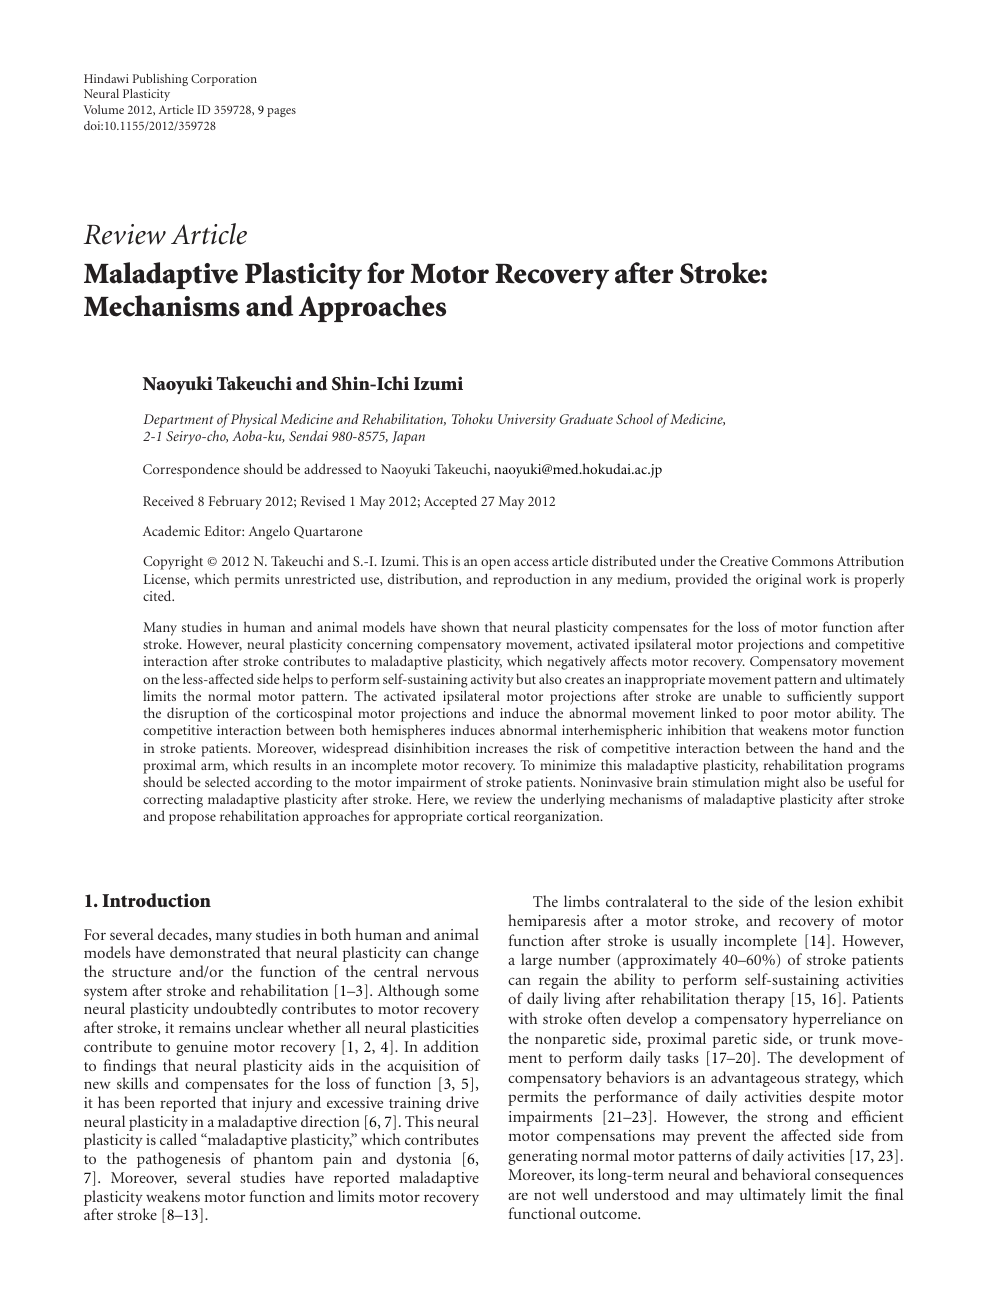 Maladaptive Plasticity for Motor Recovery after Stroke: Mechanisms